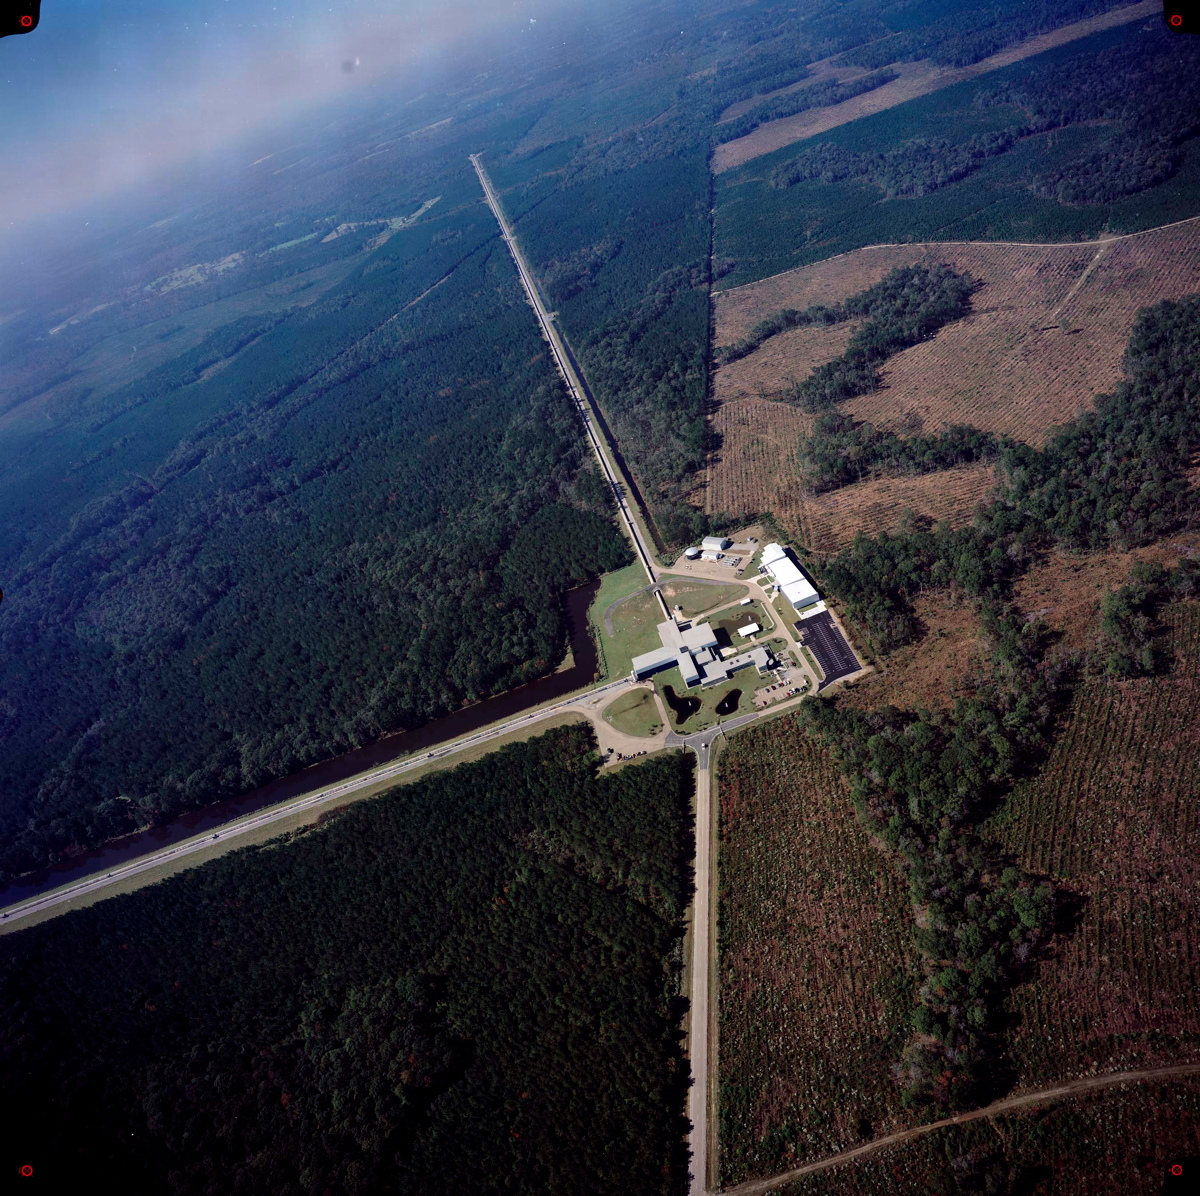 Project LIGO: How Lasers Could Reveal Glimpses of Gravitational Waves